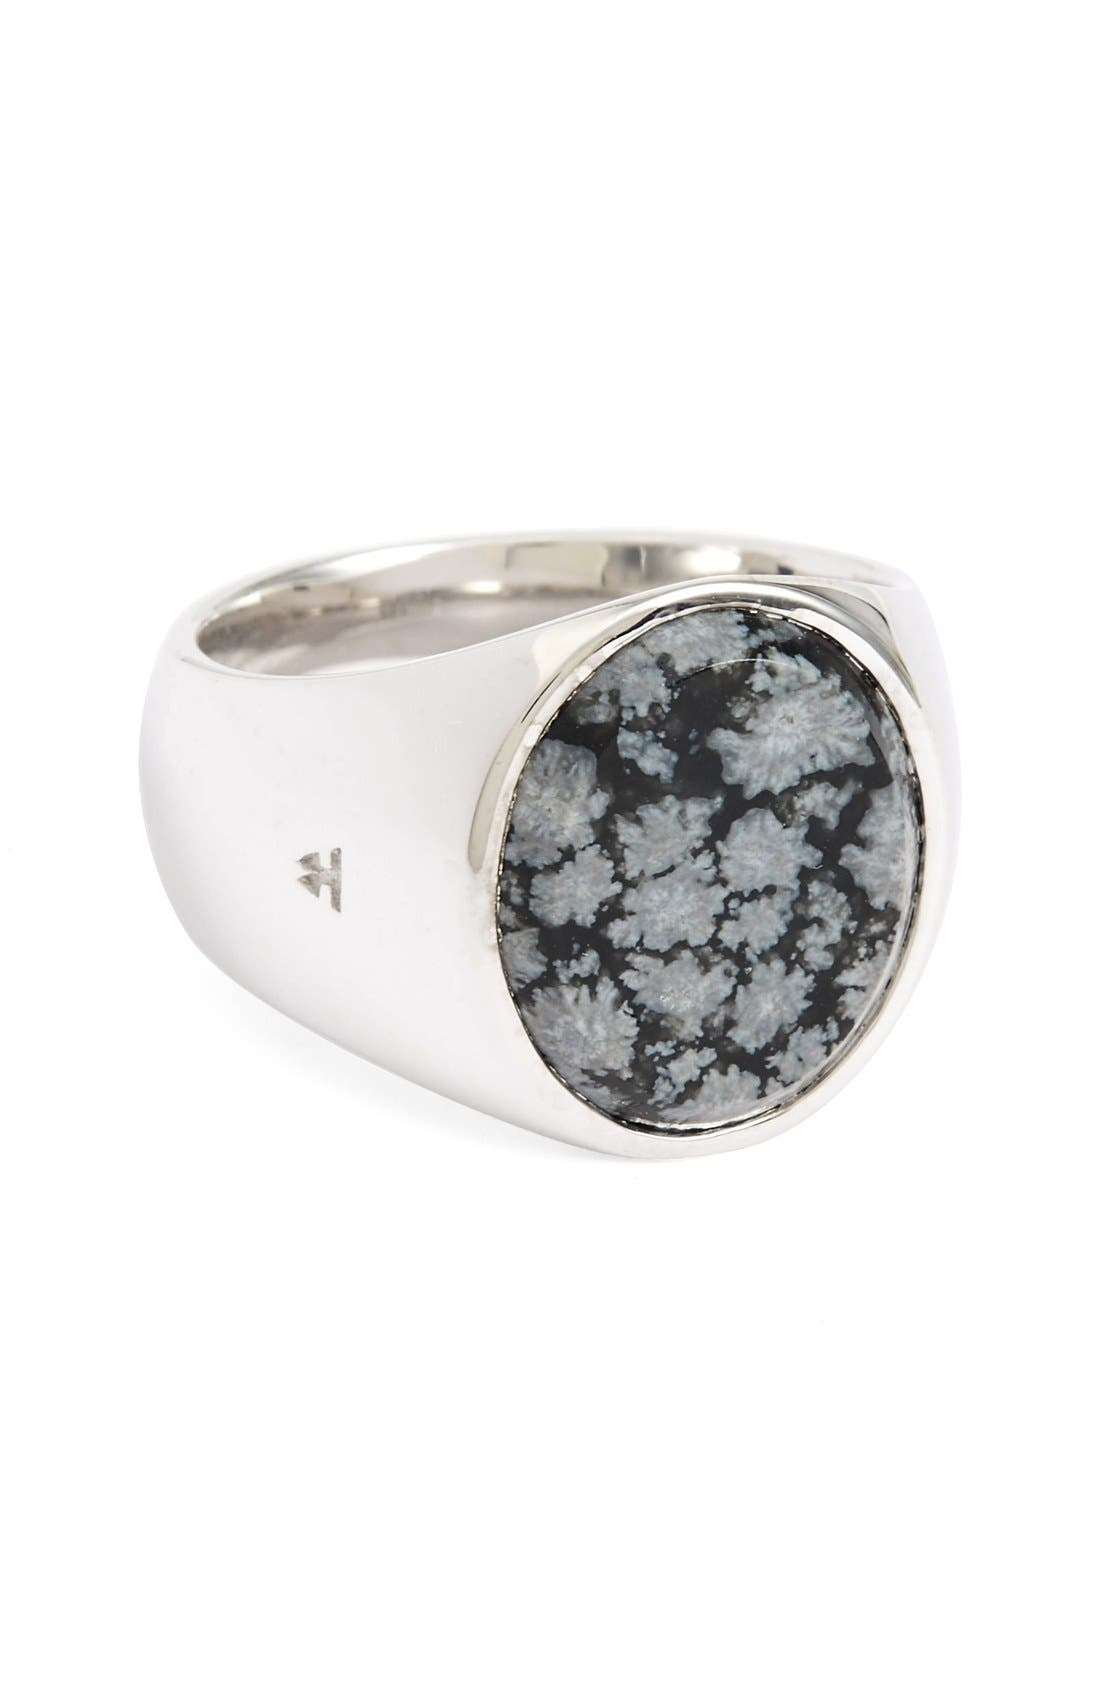 Snowflake Obsidian Oval Signet Ring,                             Main thumbnail 1, color,                             Silver